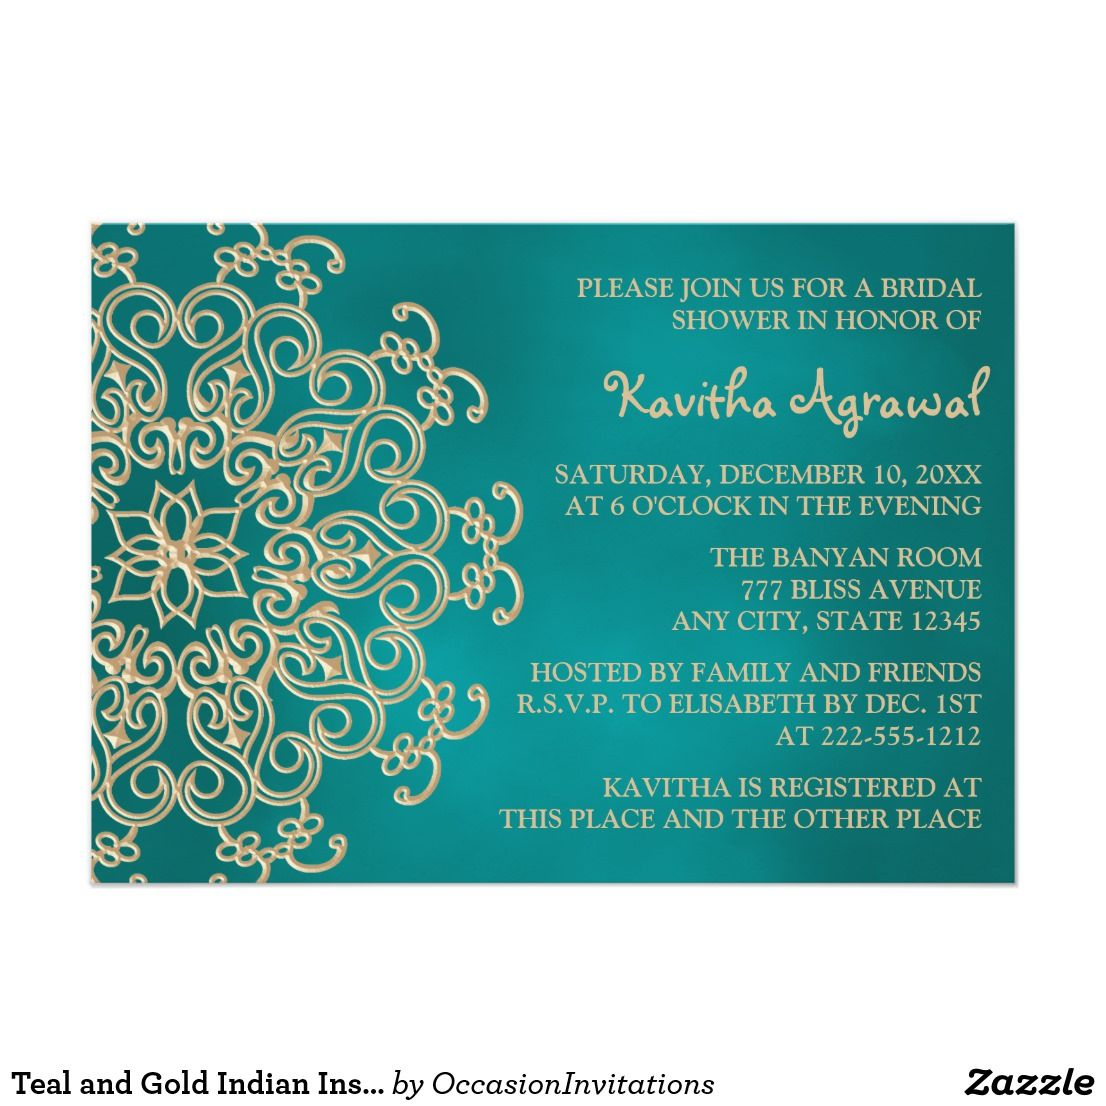 Painted Couple Peacock Wedding Gifts Unique Delicate Home: Teal And Gold Indian Inspired Bridal Shower Invitation